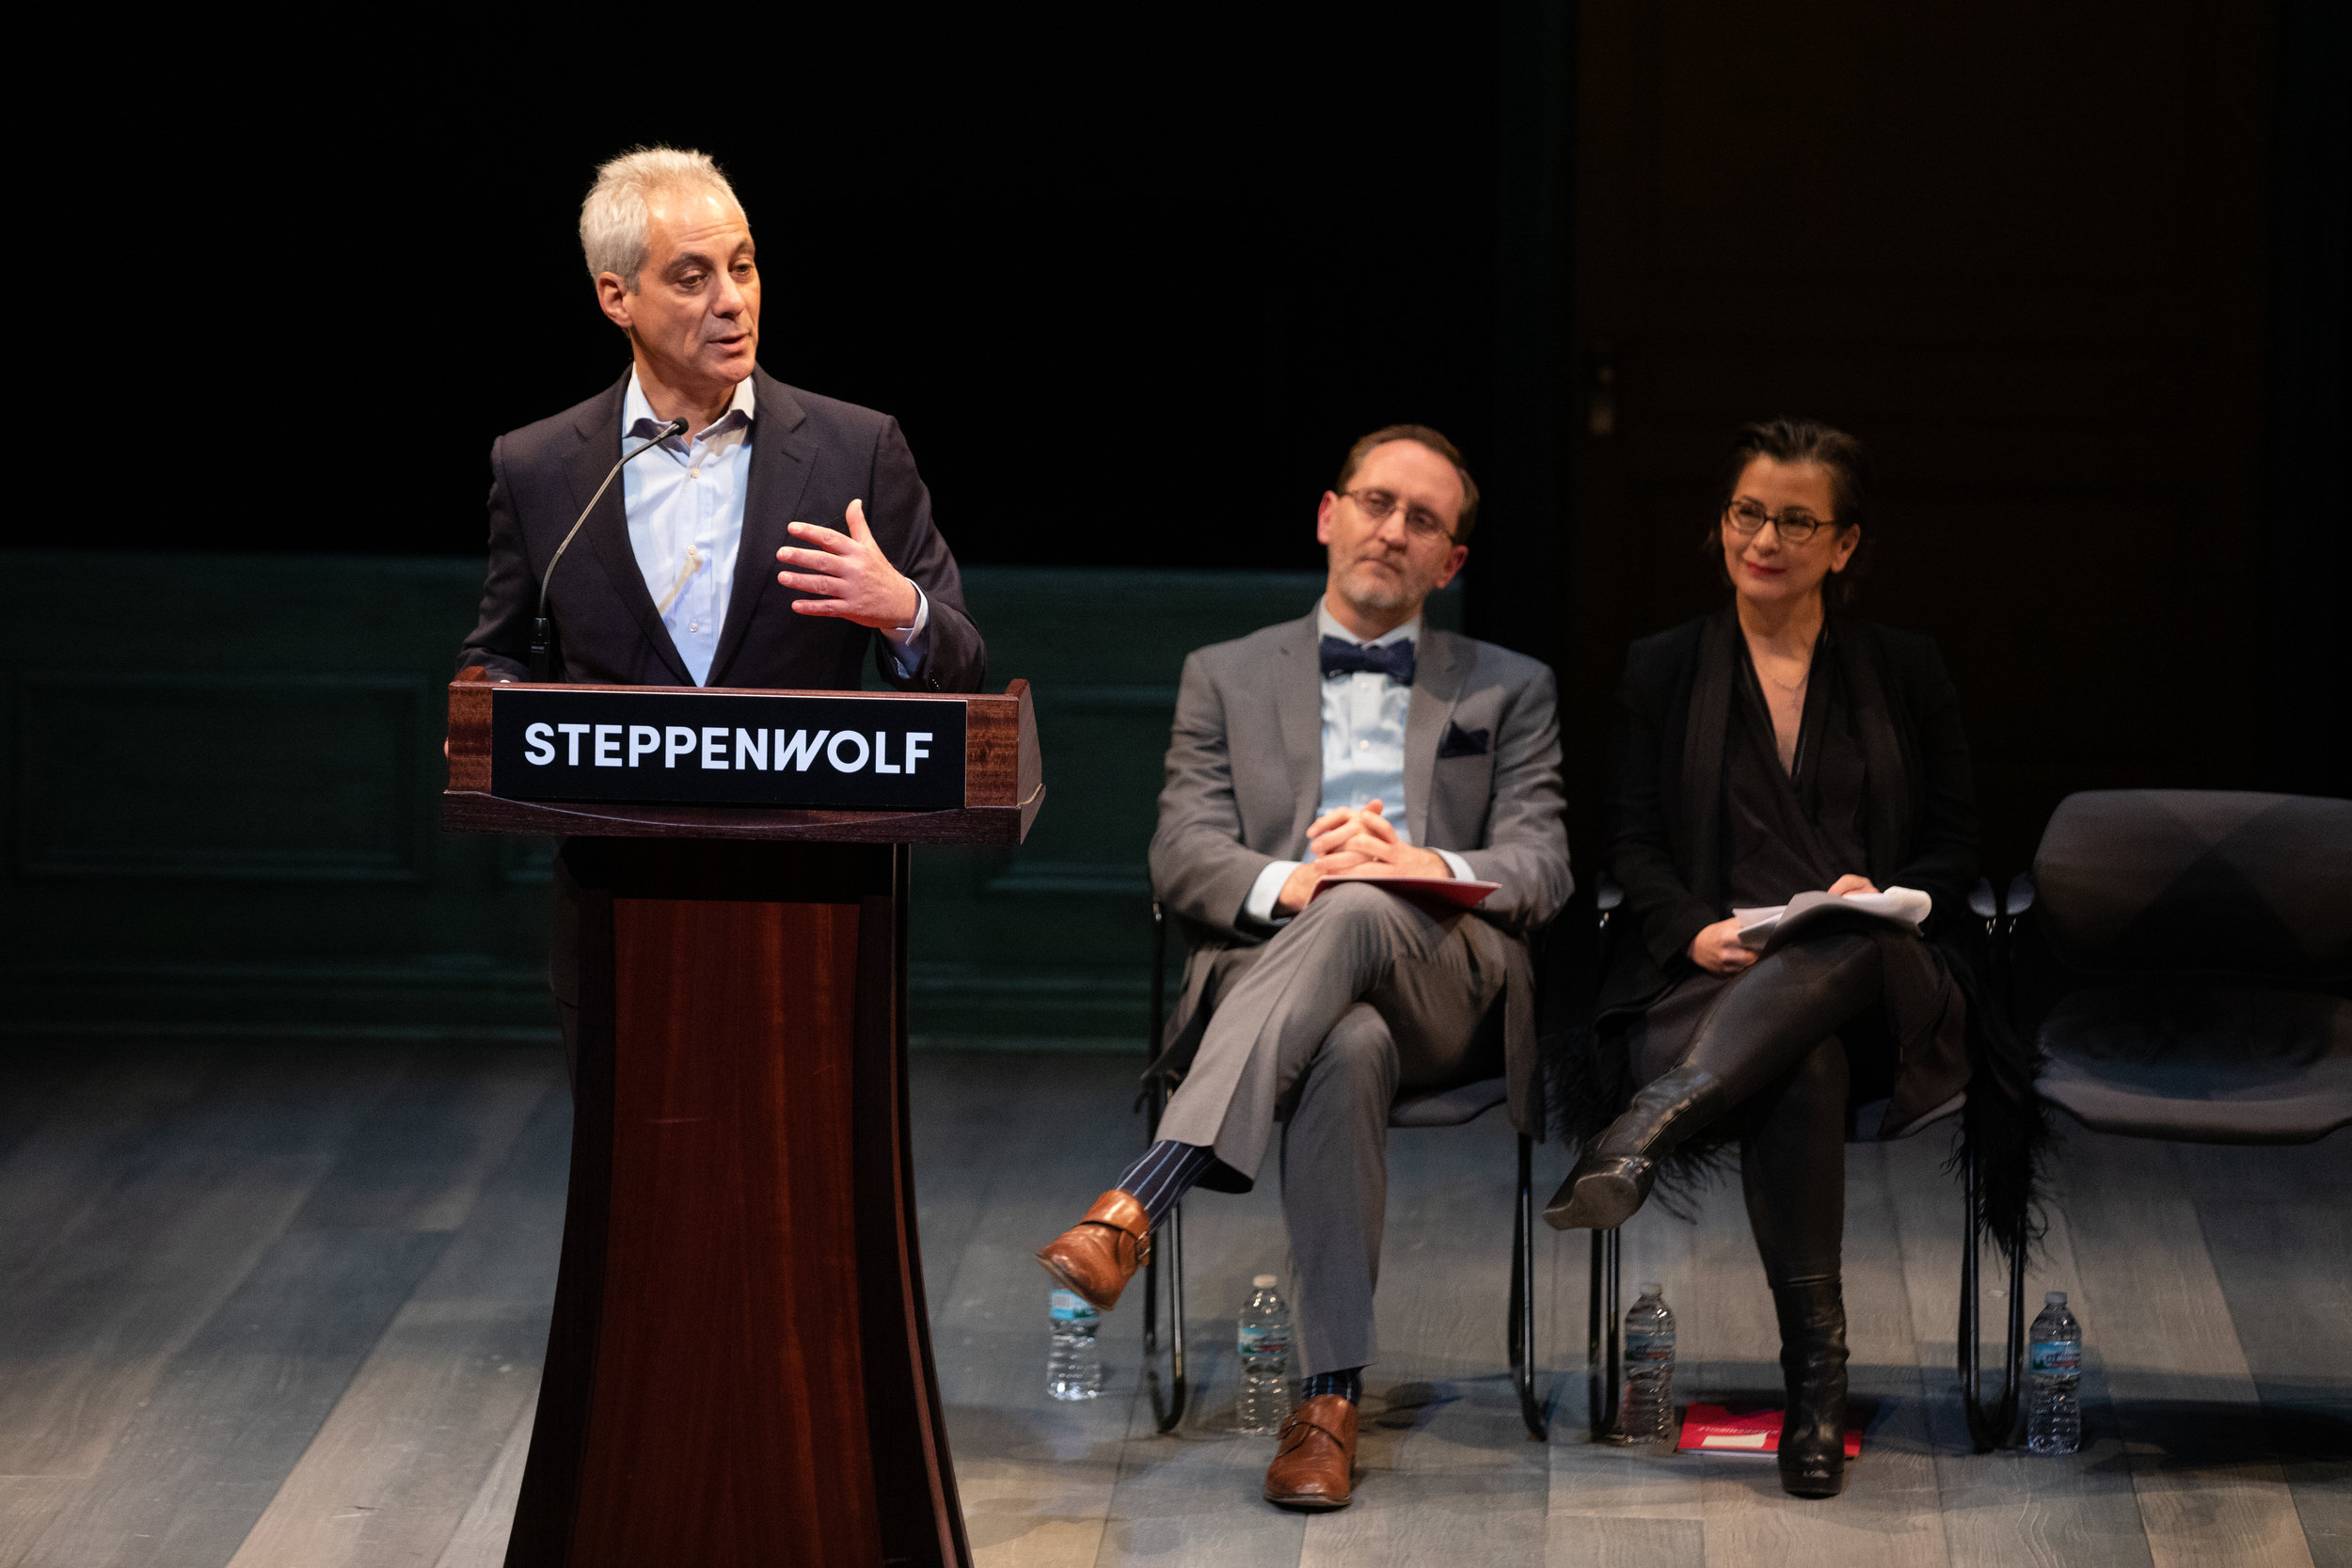 Mayor Rahm Emanuel shares remarks at Steppenwolf's groundbreaking event, March 5, 2019. Pictured seated (L to R): Steppenwolf Executive Director David Schmitz and Artistic Director Anna D. Shapiro. Photo Credit: Kyle Flubacker